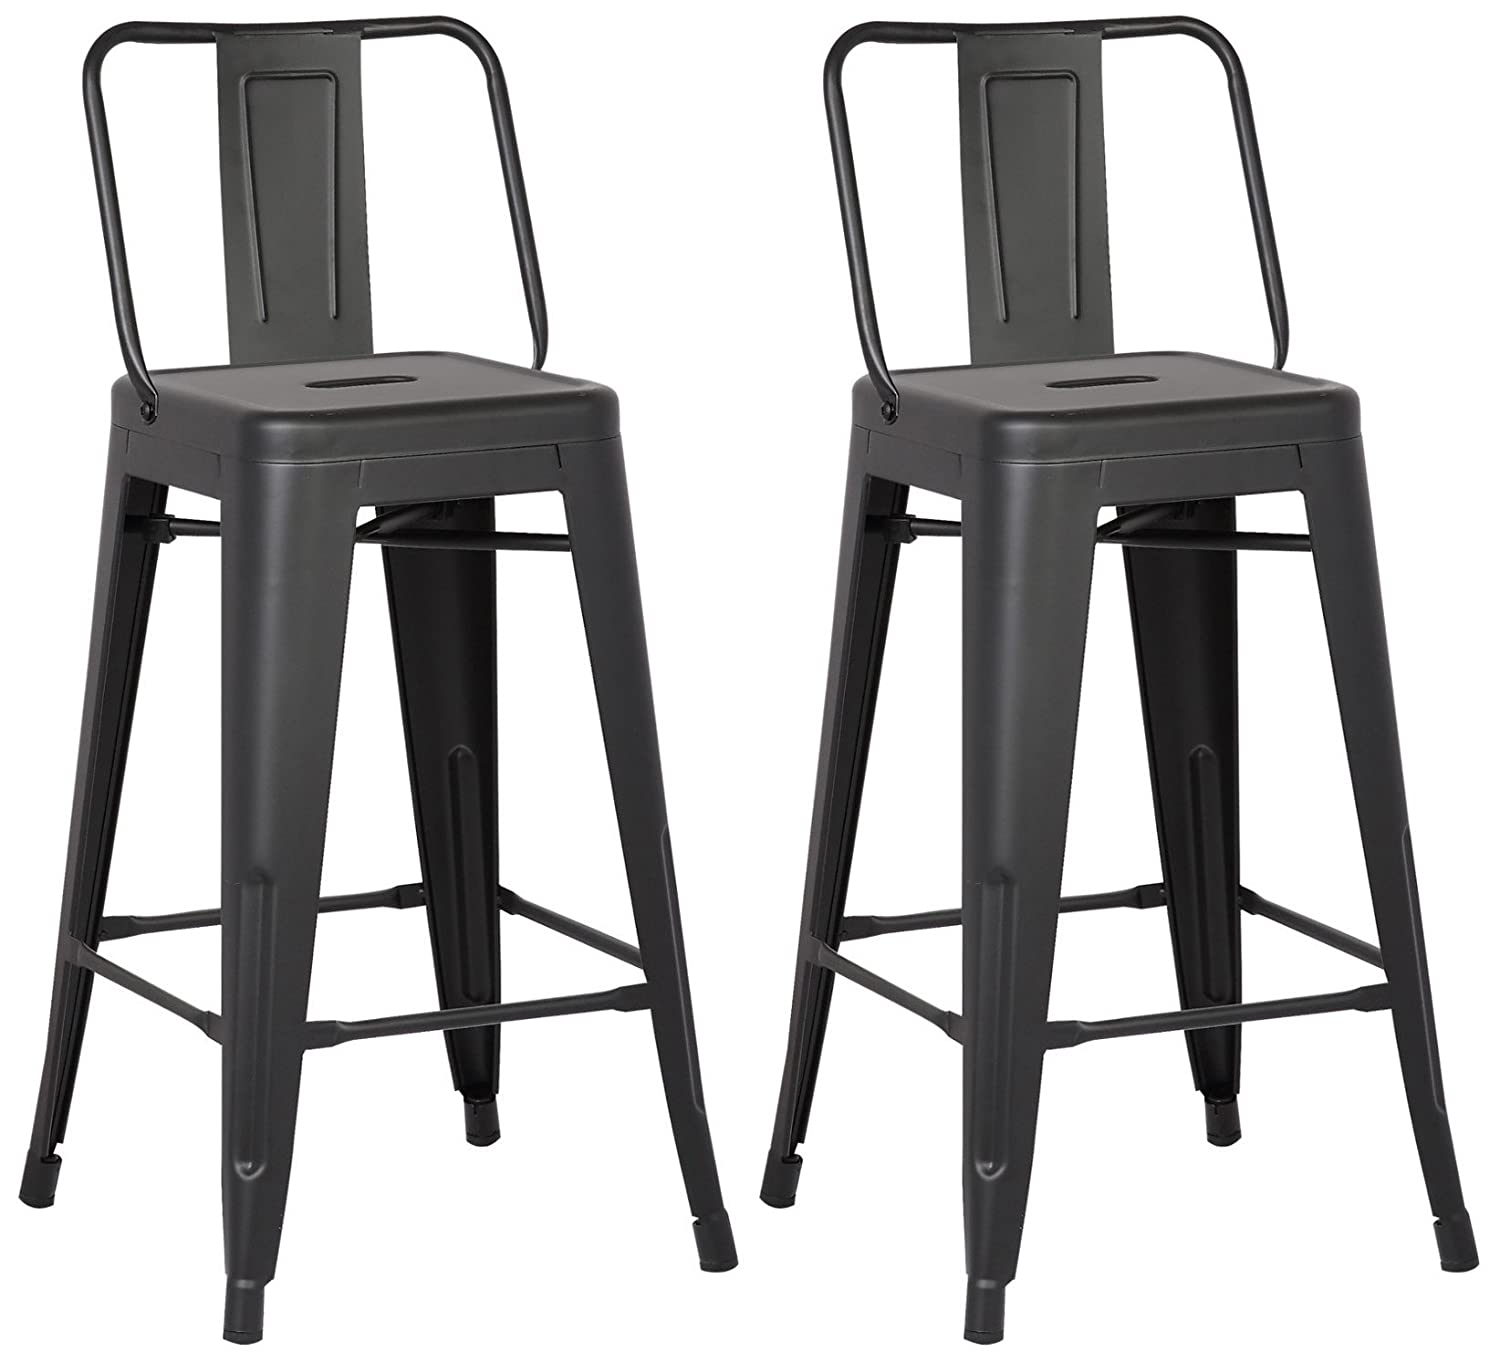 "AC Pacific Modern Light Weight Industrial Metal Bucket Back Barstool, 30"" Seat Height Counter Stool (Set of 2), Matte Black Finish"